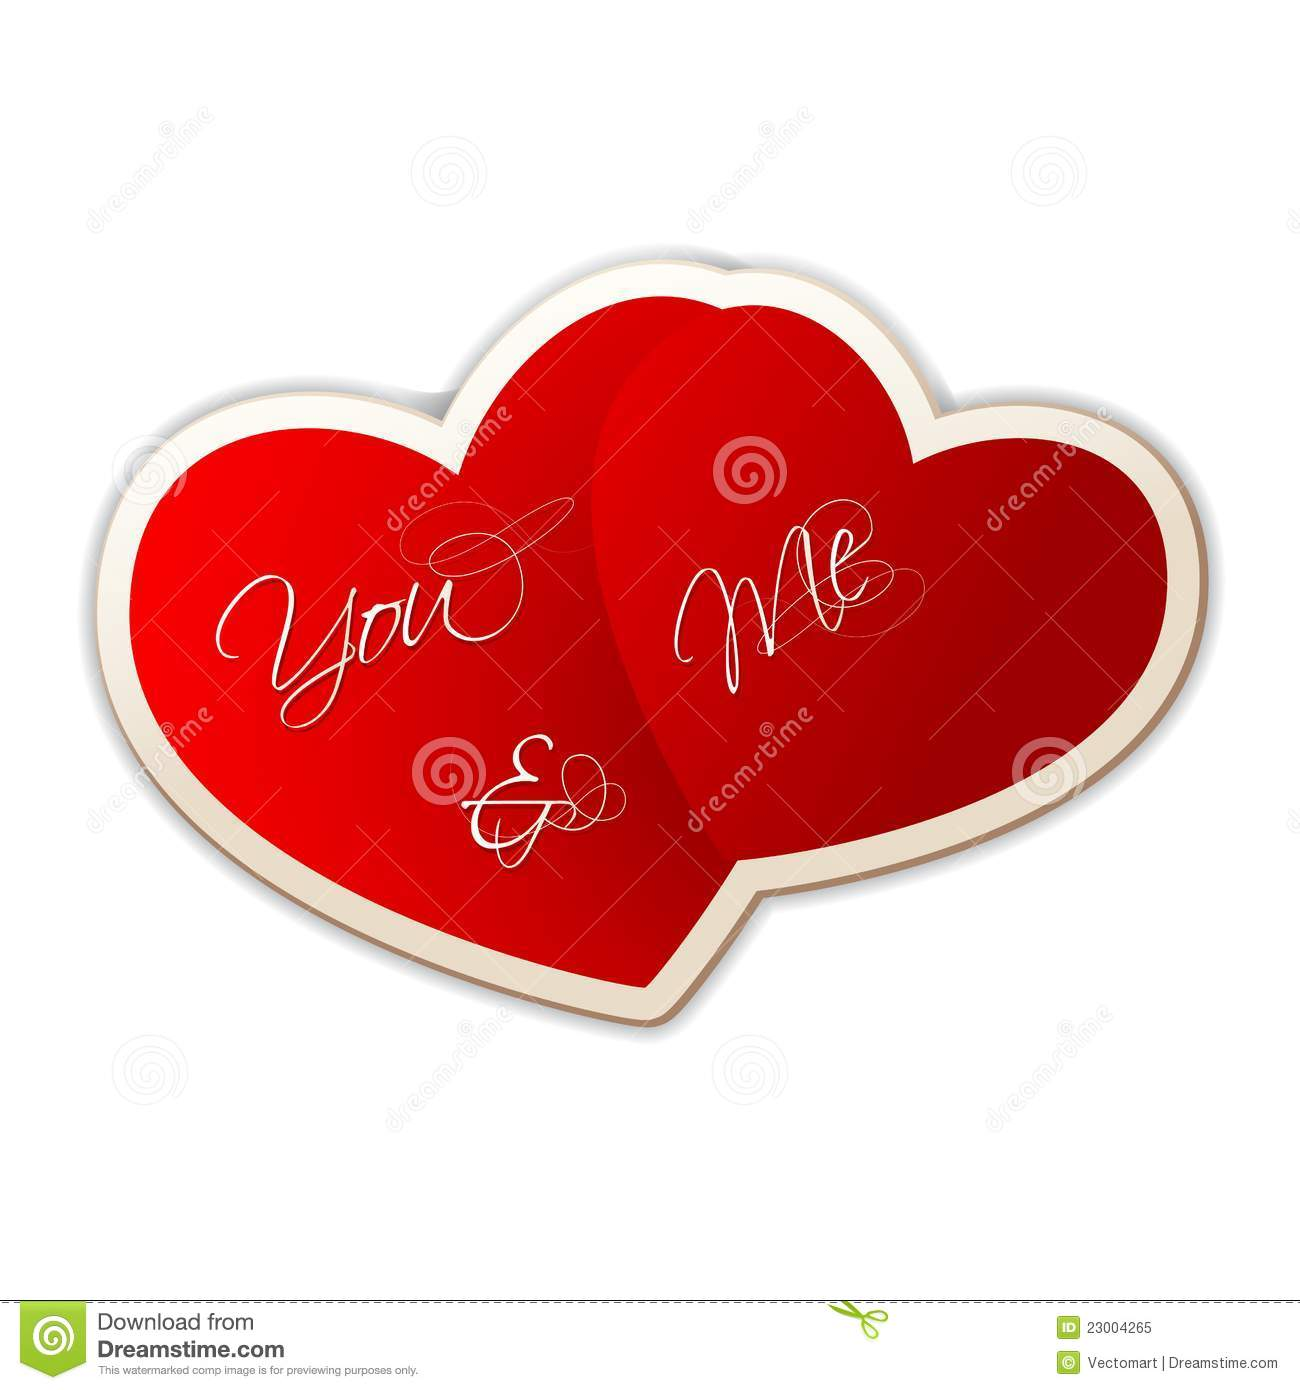 Illustration of you and me on heart shape sticker on love background.